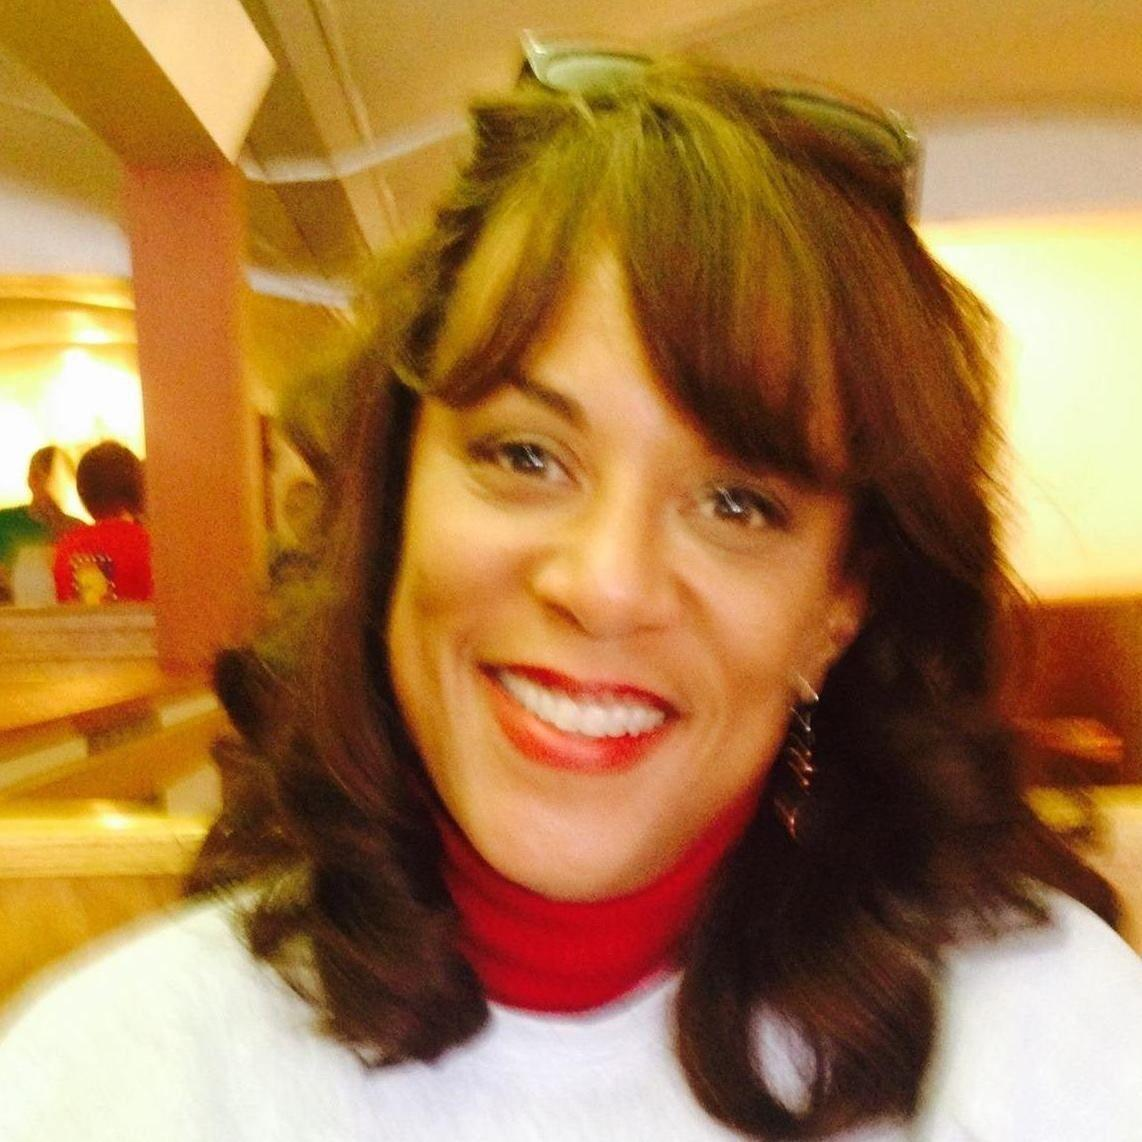 peoria latin singles Find singles in peoria with dating site - doulike doulike makes online dating in peoria, il simple if you cannot help feeling that all you need is a new acquaintance, true love or a friend, we found an easy way out.